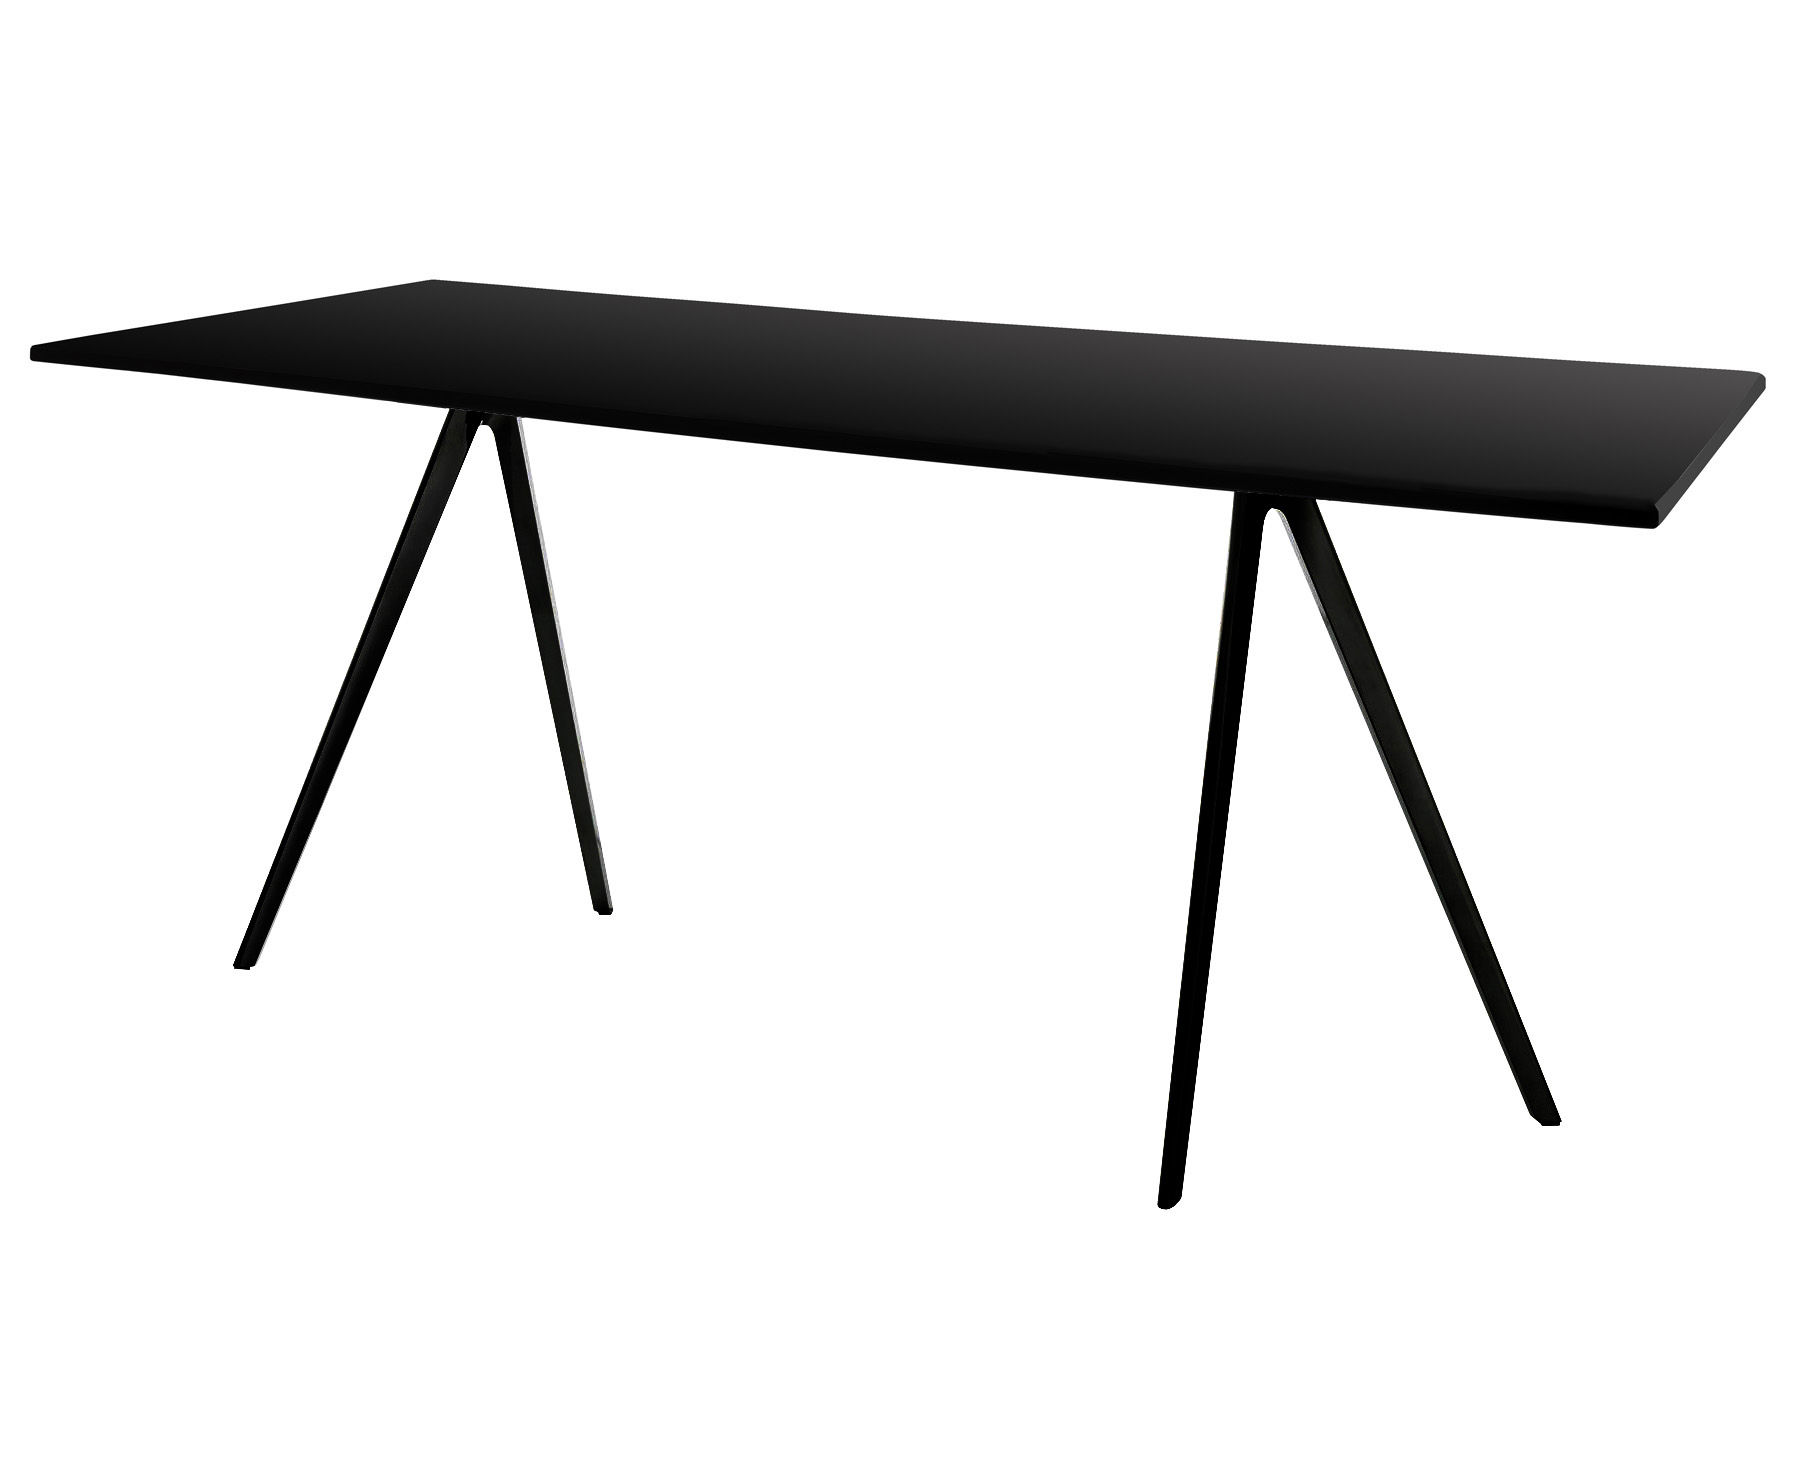 Trends - Must-haves Office - Baguette Rectangular table - 161 x 85 cm - MDF top by Magis - Black legs / Black MDF top - Lacquered MDF, Varnished cast aluminium